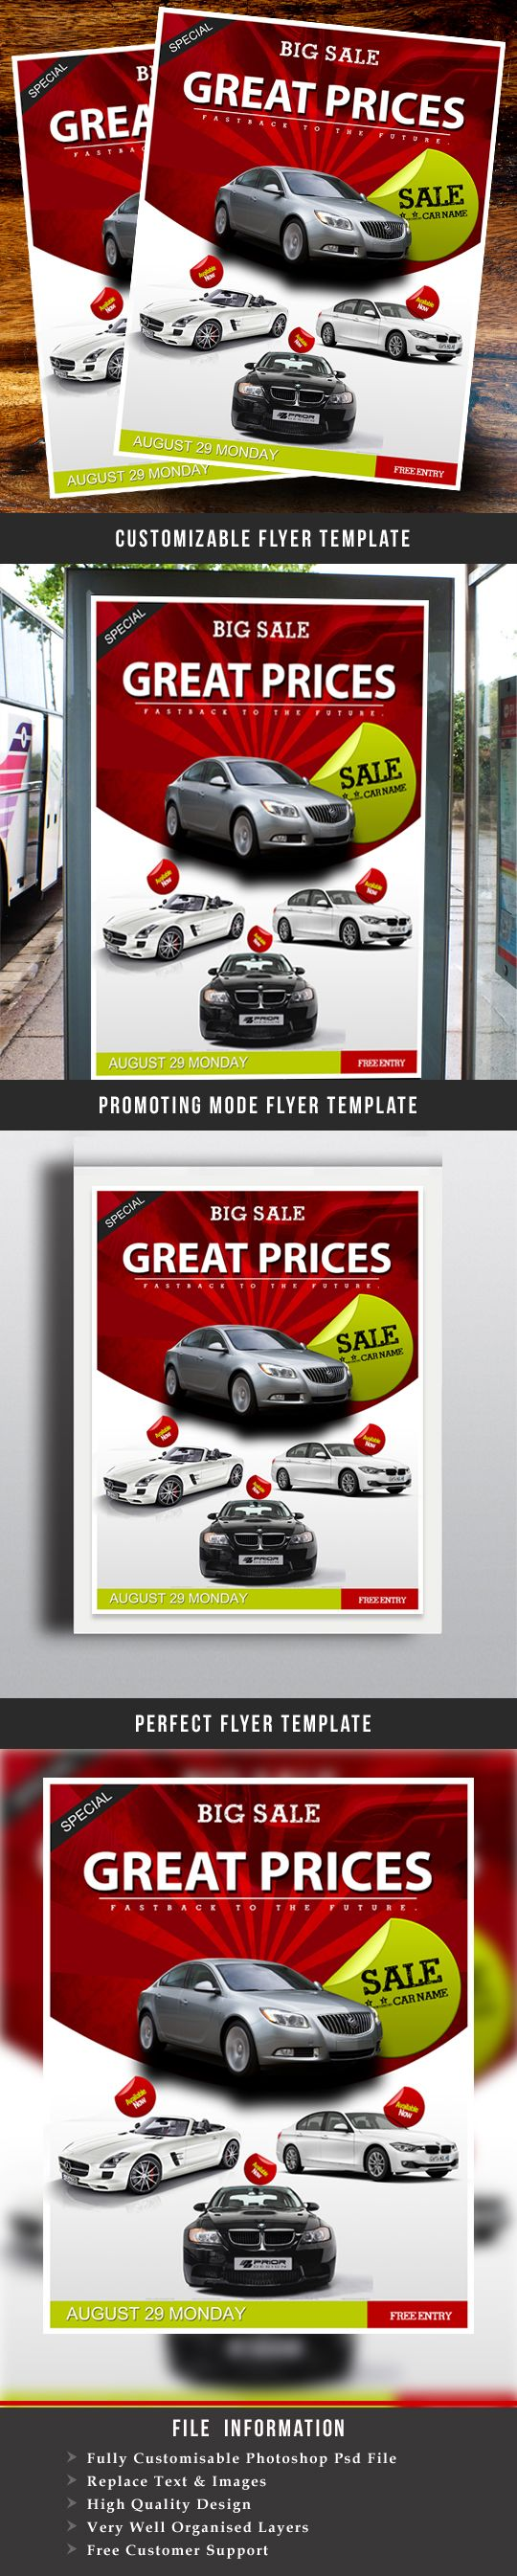 car for sale flyer template free - Goal.blockety.co